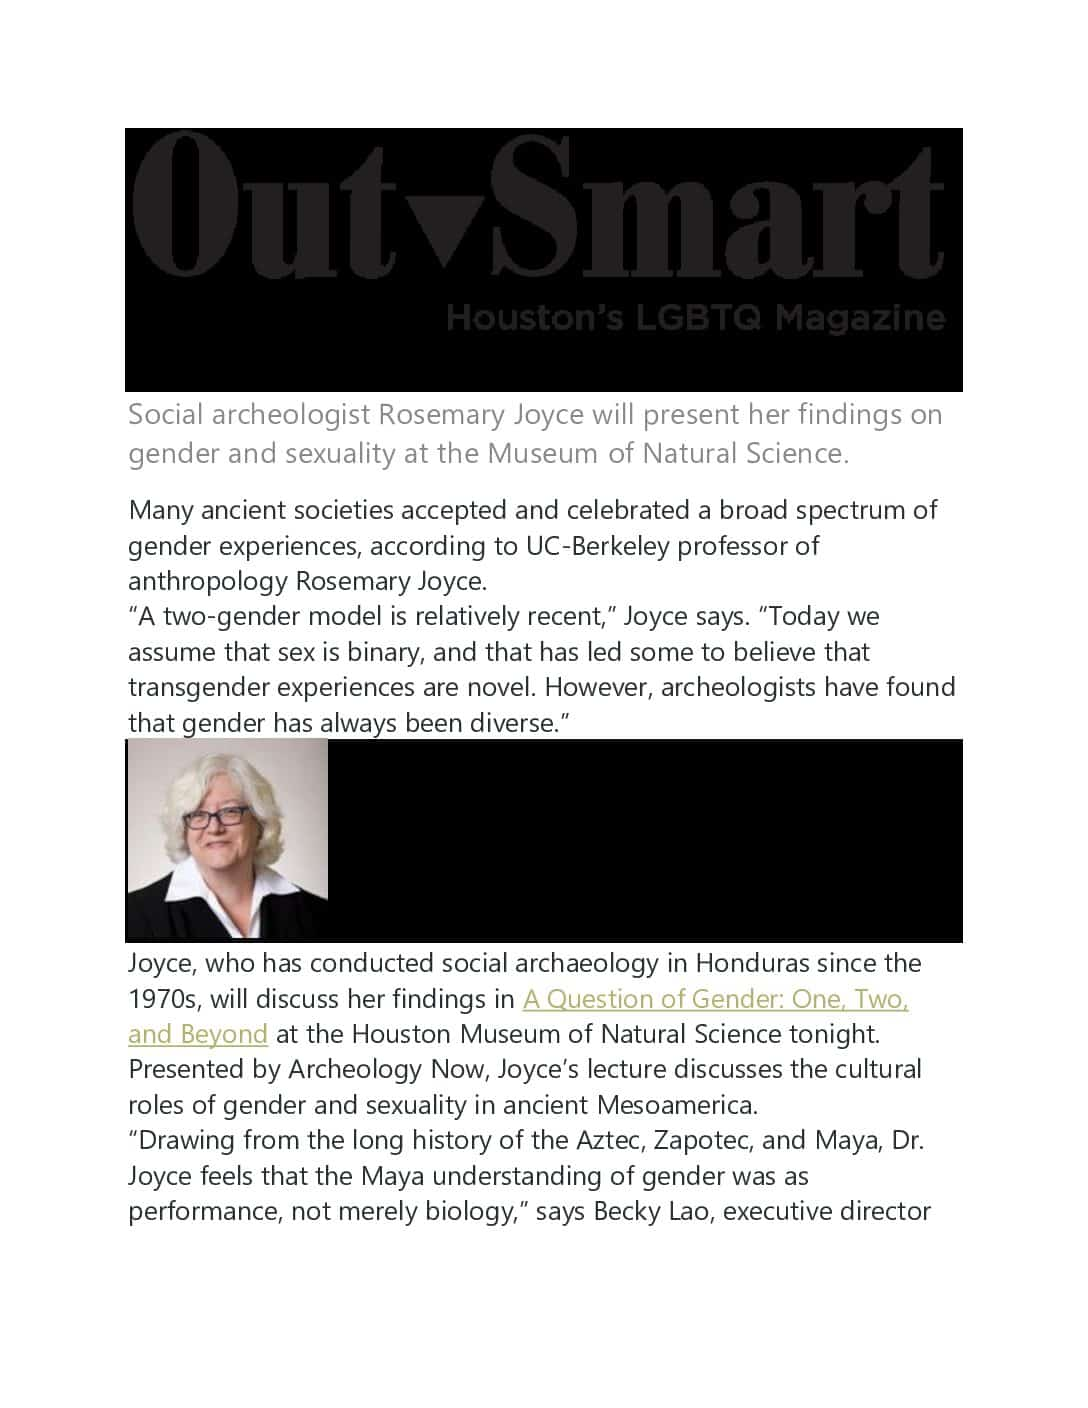 Archaeology Now – Outsmart Magazine